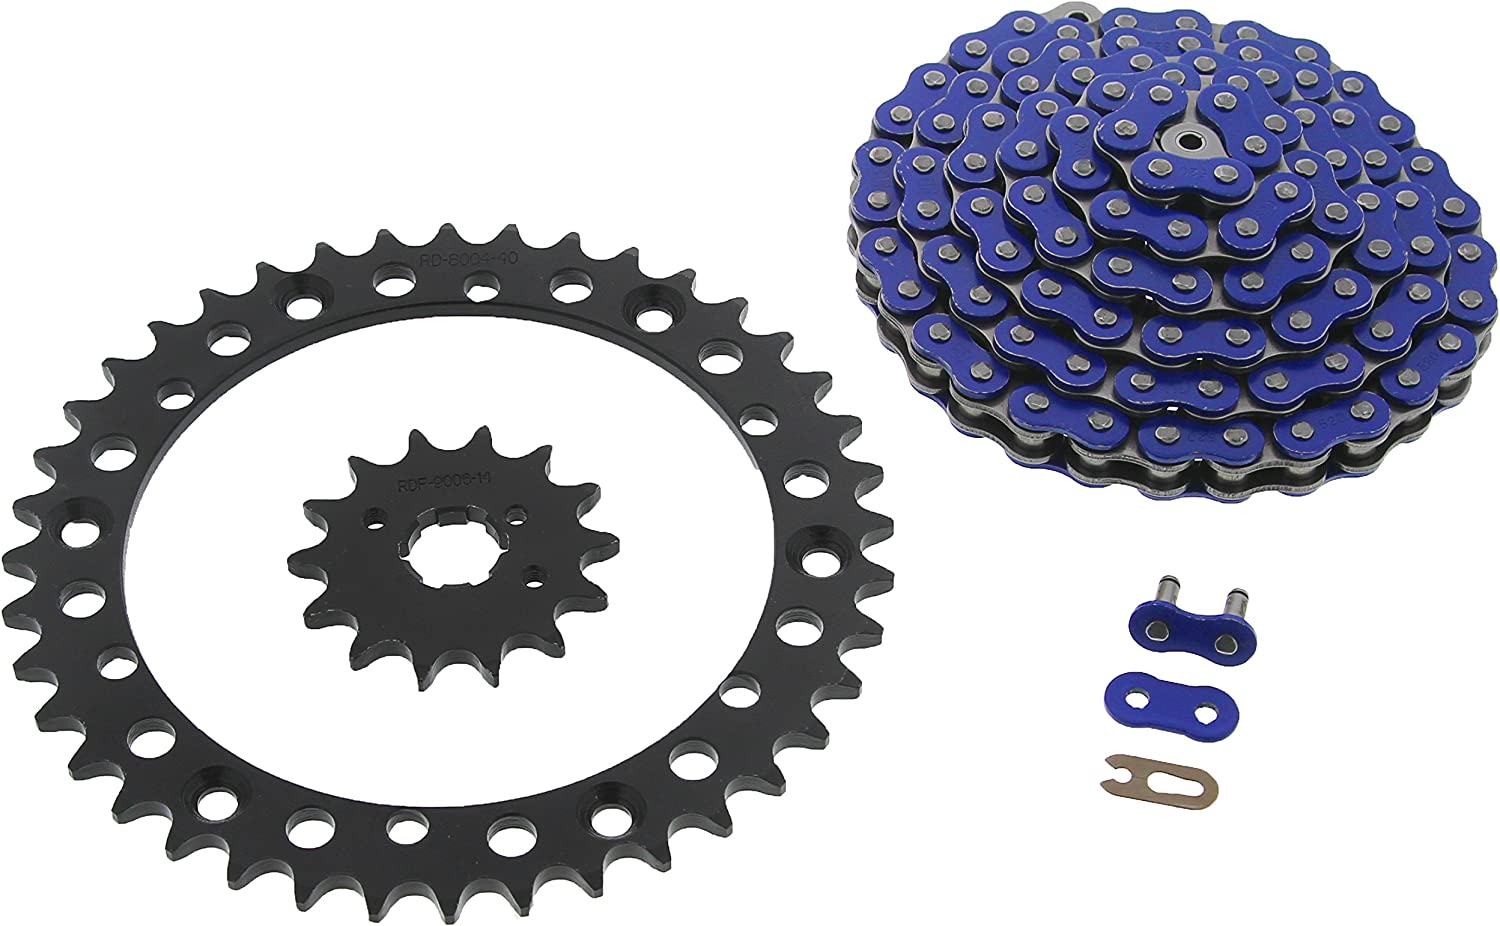 1999-2003 fits Yamaha YFM350 350 Max 59% OFF Warrior Chain Blue Department store Spro Black